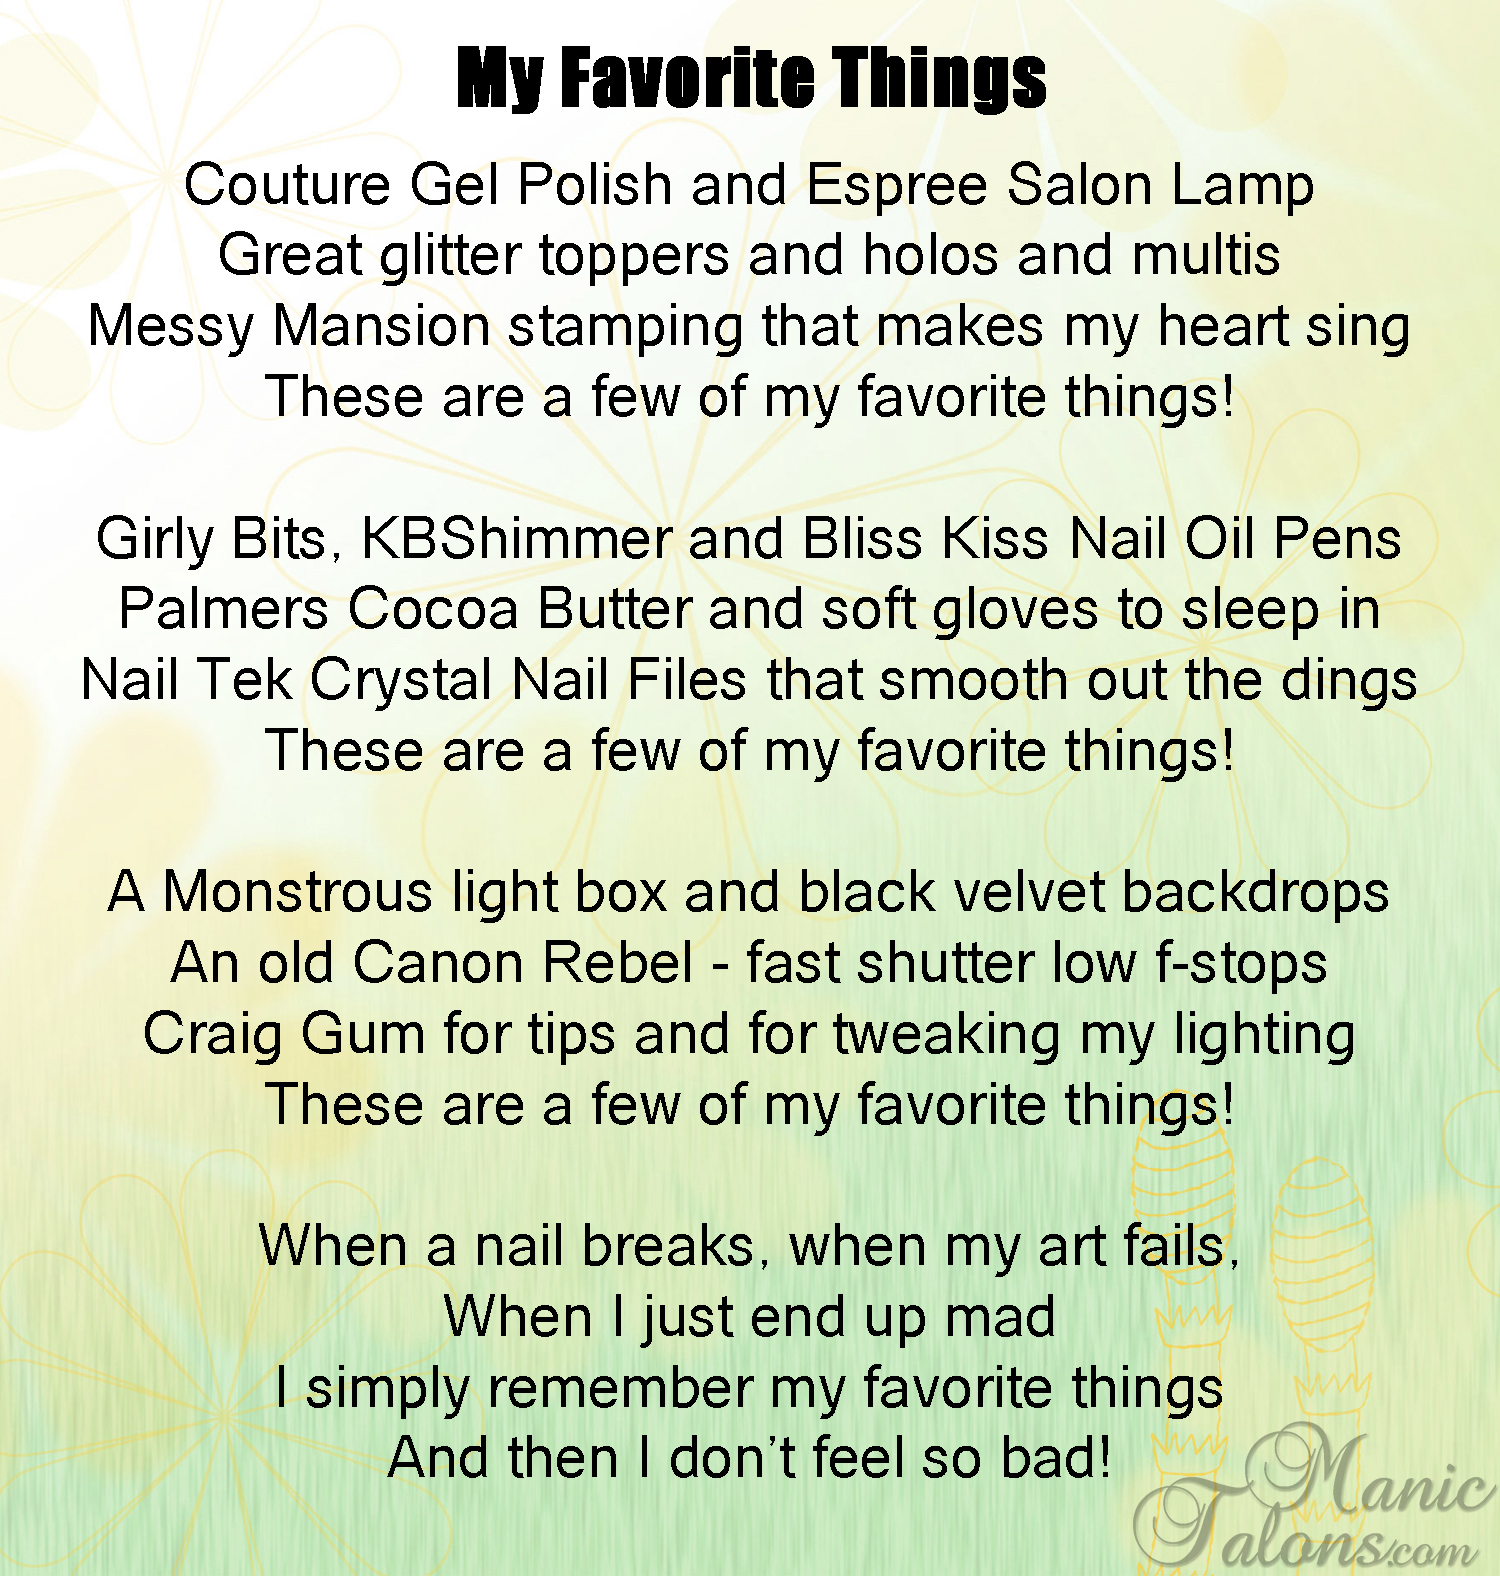 my favorite things song: